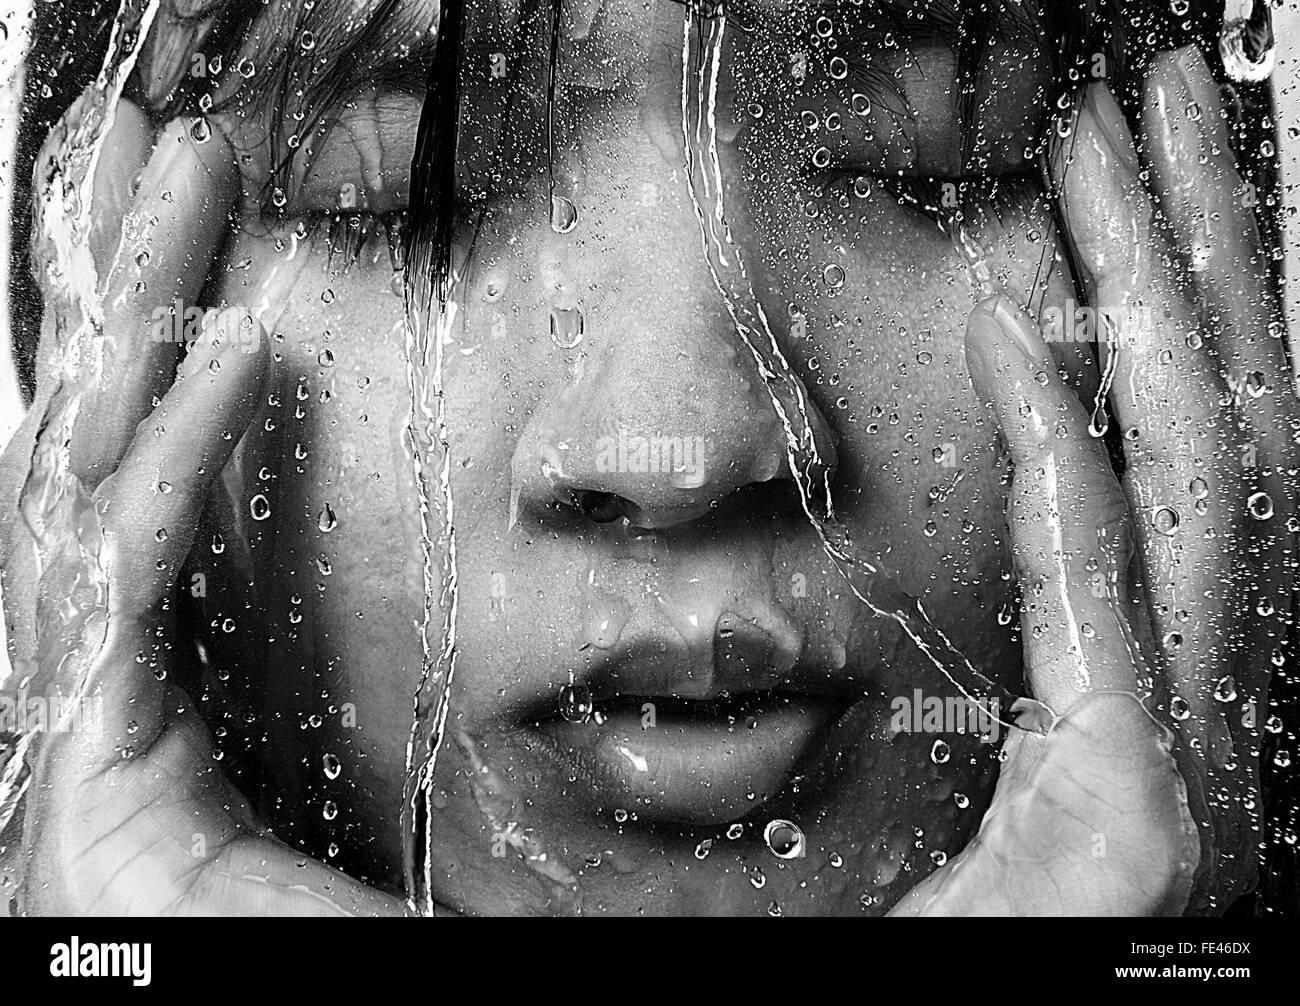 Woman In Shower Seen Through Wet Glass Stock Photo